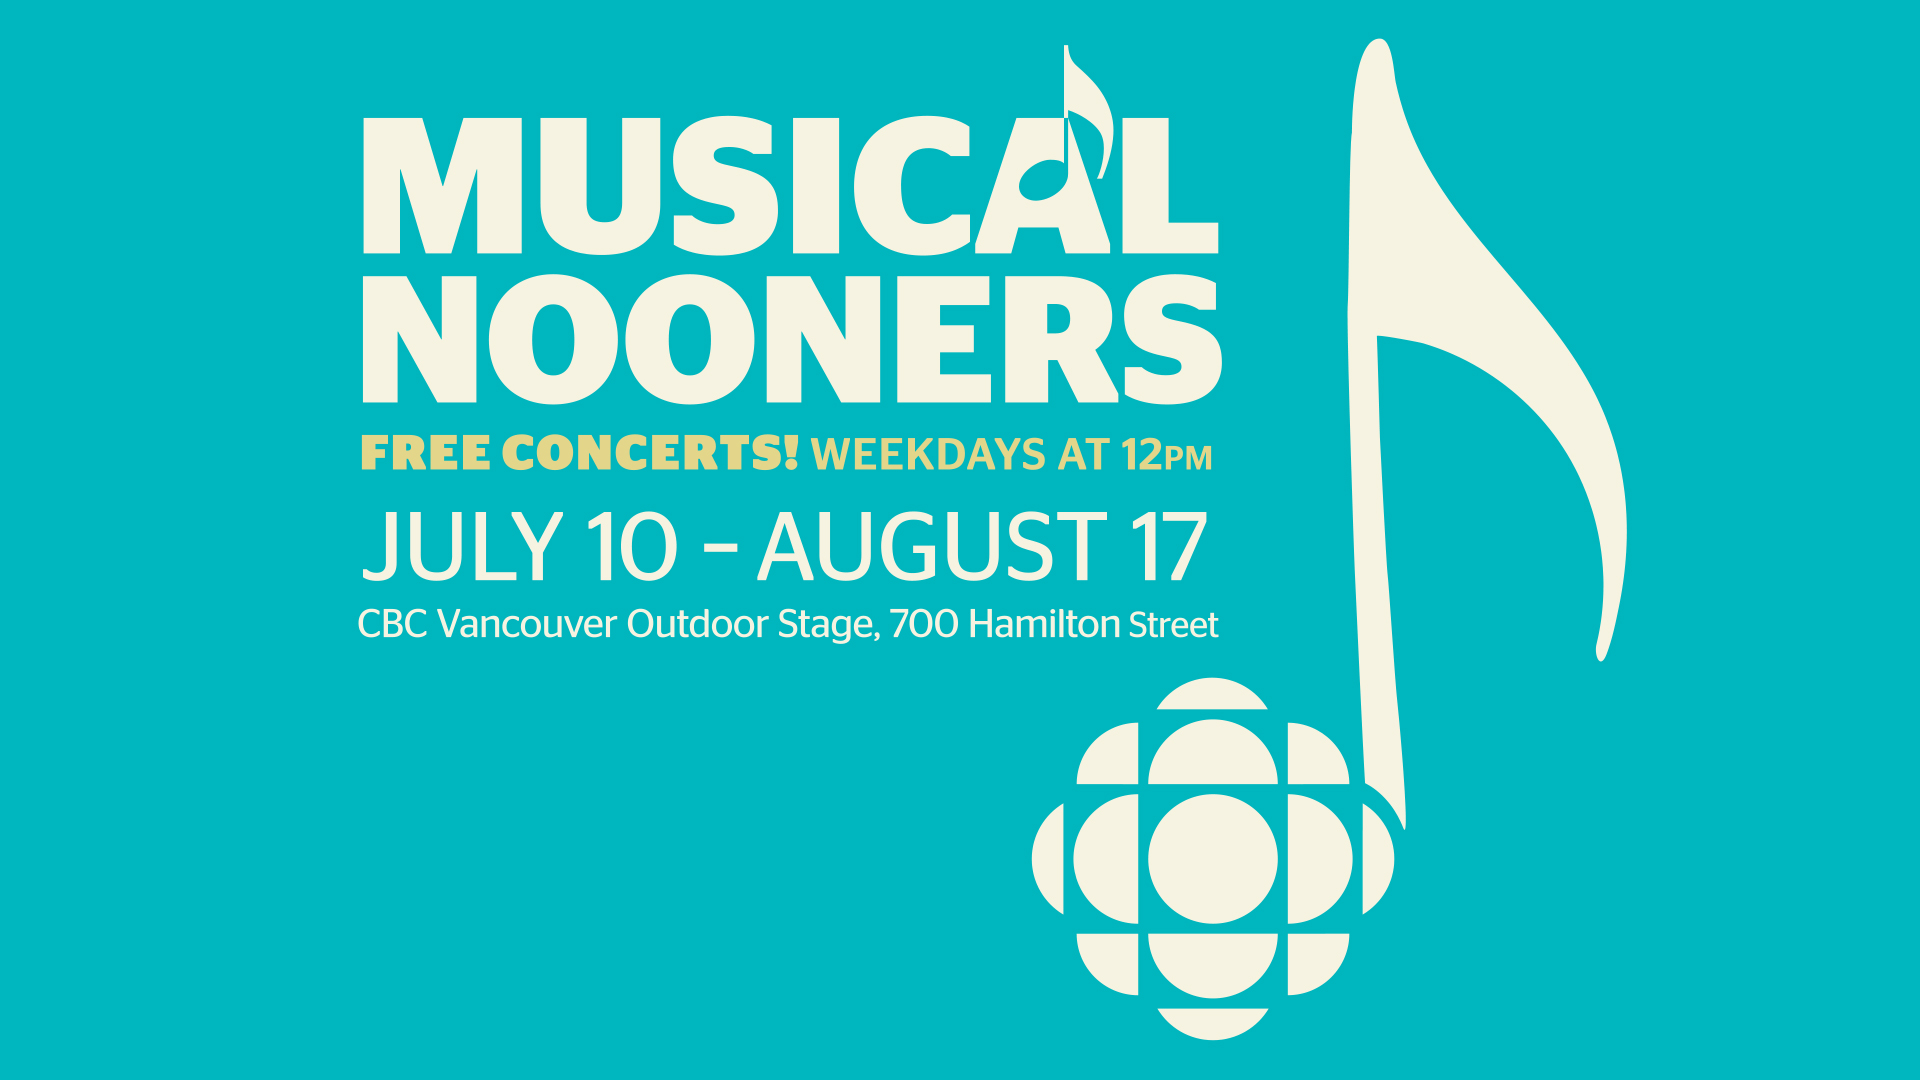 CBC Vancouver's Musical Nooners Return with Special Opening Day Celebrating Indigenous Culture